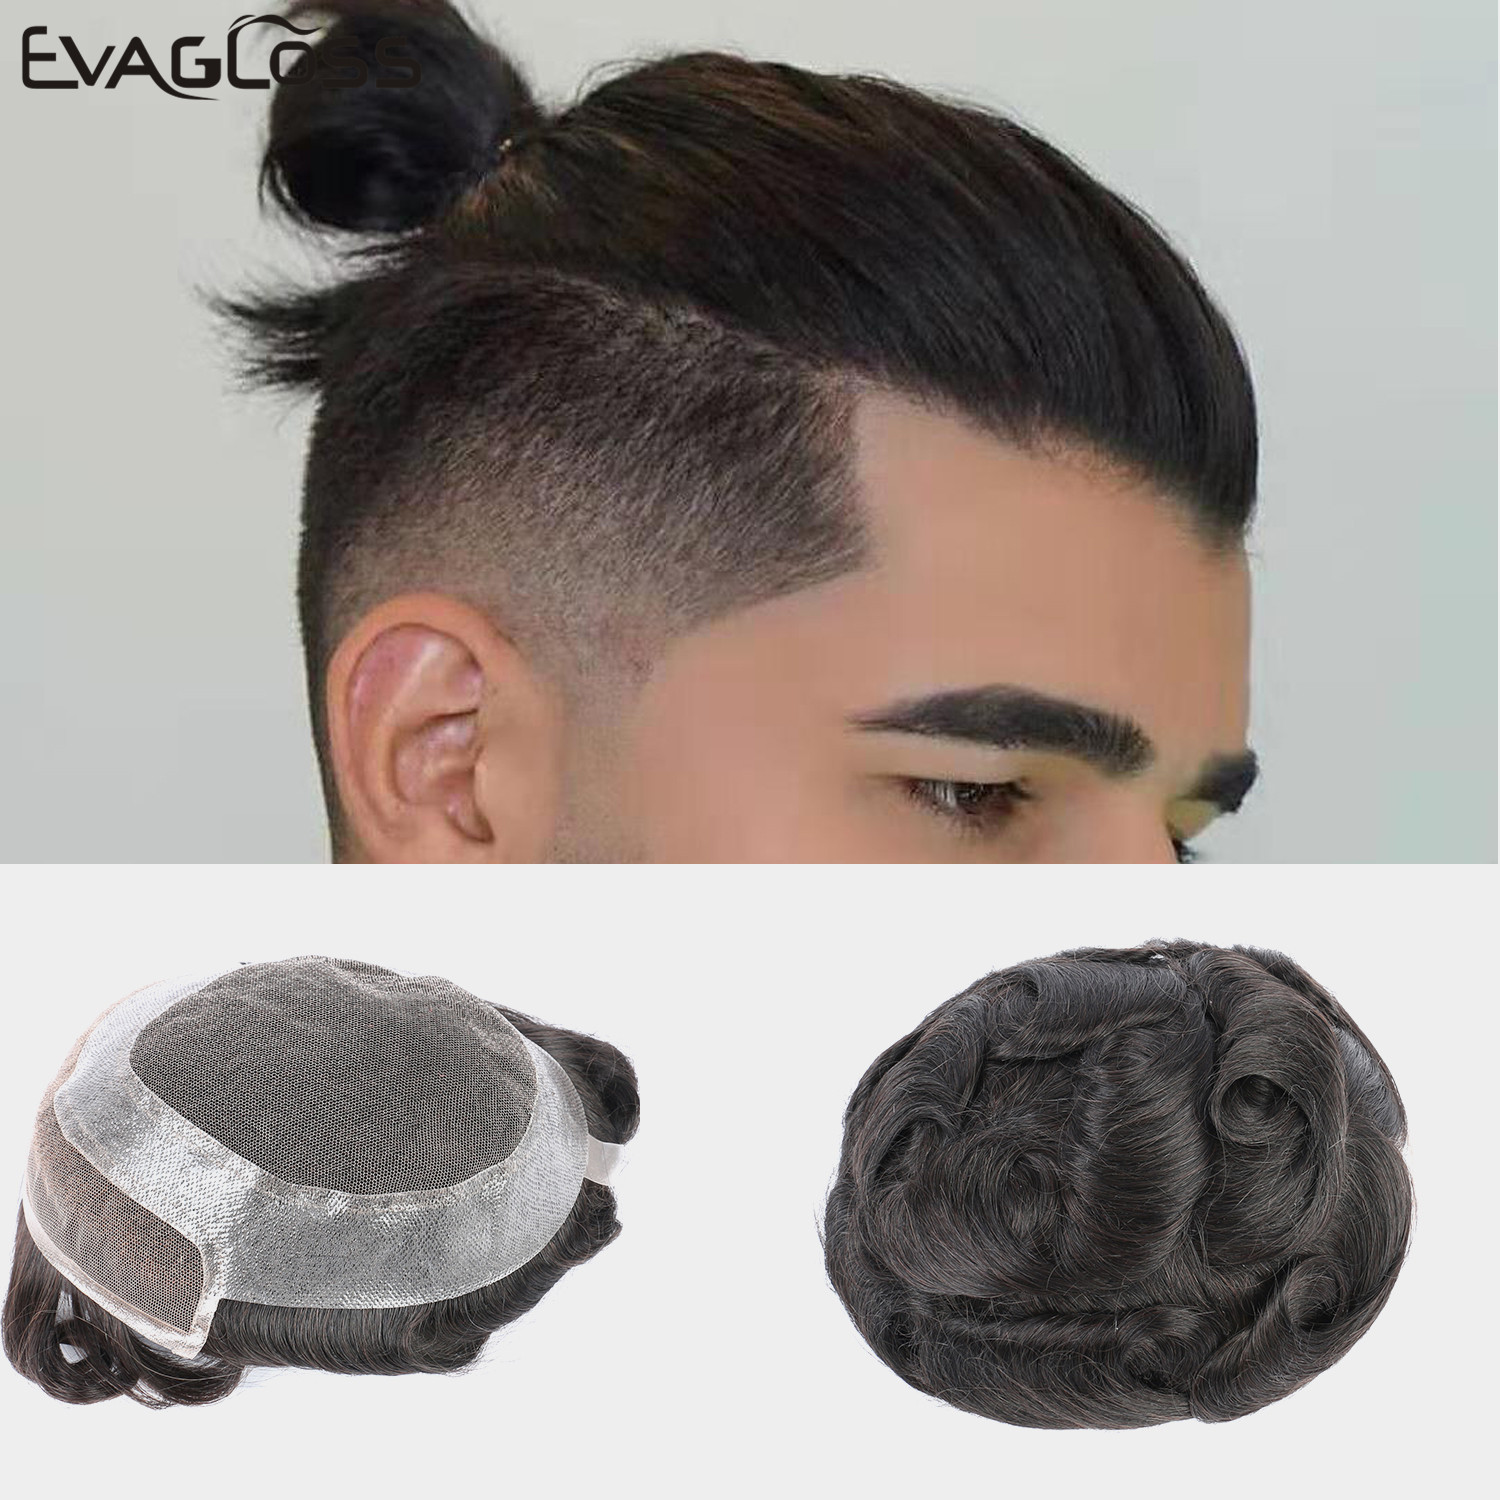 EVAGLOSS Human Hair Men Wig Hollywood Lace Front With Skin Durable Hair Mens Toupee Hair System Replacement Free Shipping